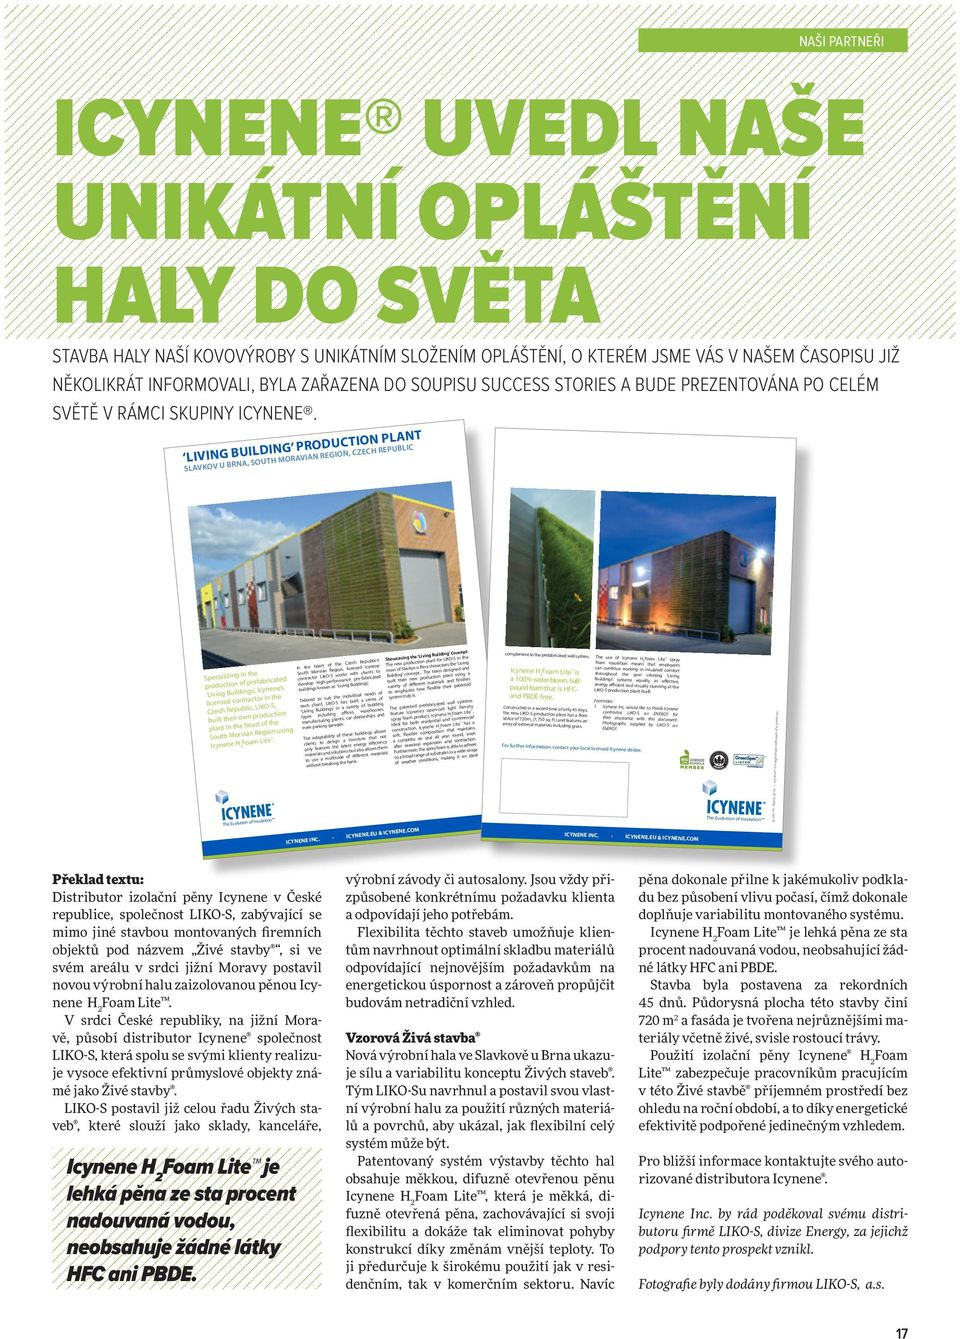 living building production plant Slavkov u Brna, South Moravian region, CZeCh republic Specializing in the production of prefabricated Living Buildings, Icynene s licensed contractor in the Czech